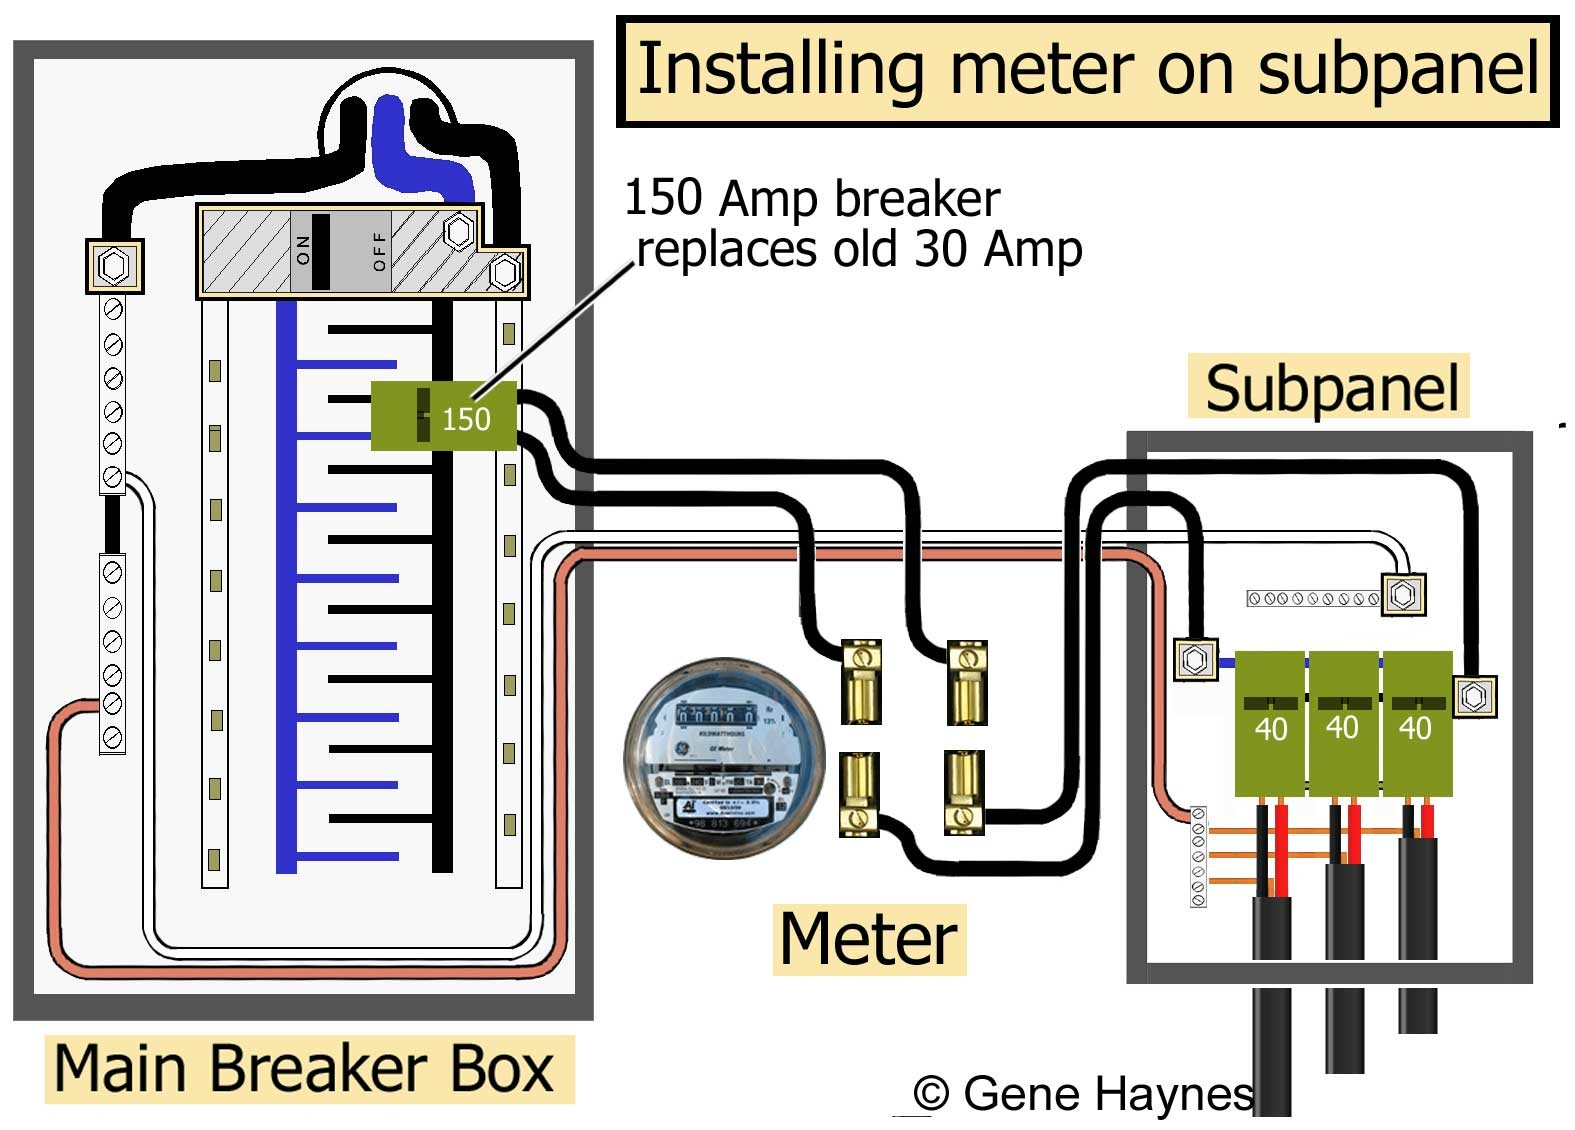 Meter Box Wiring Diagram Nz Best Image 2018 Electrical Diagrams